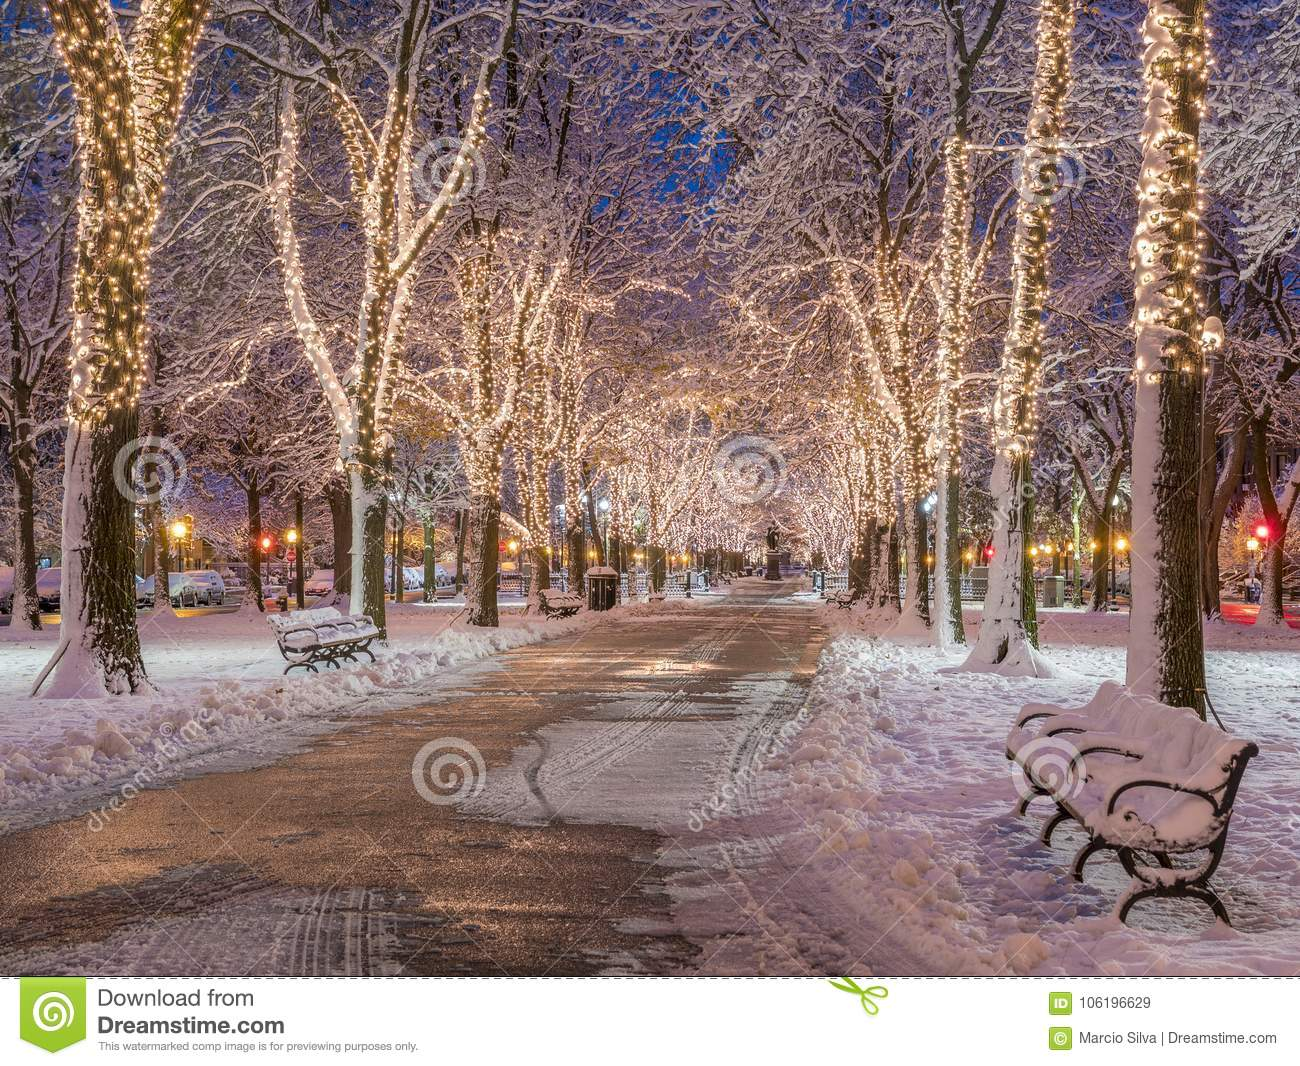 Boston Christmas Lights.Boston Christmas Lights Stock Image Image Of Christmas